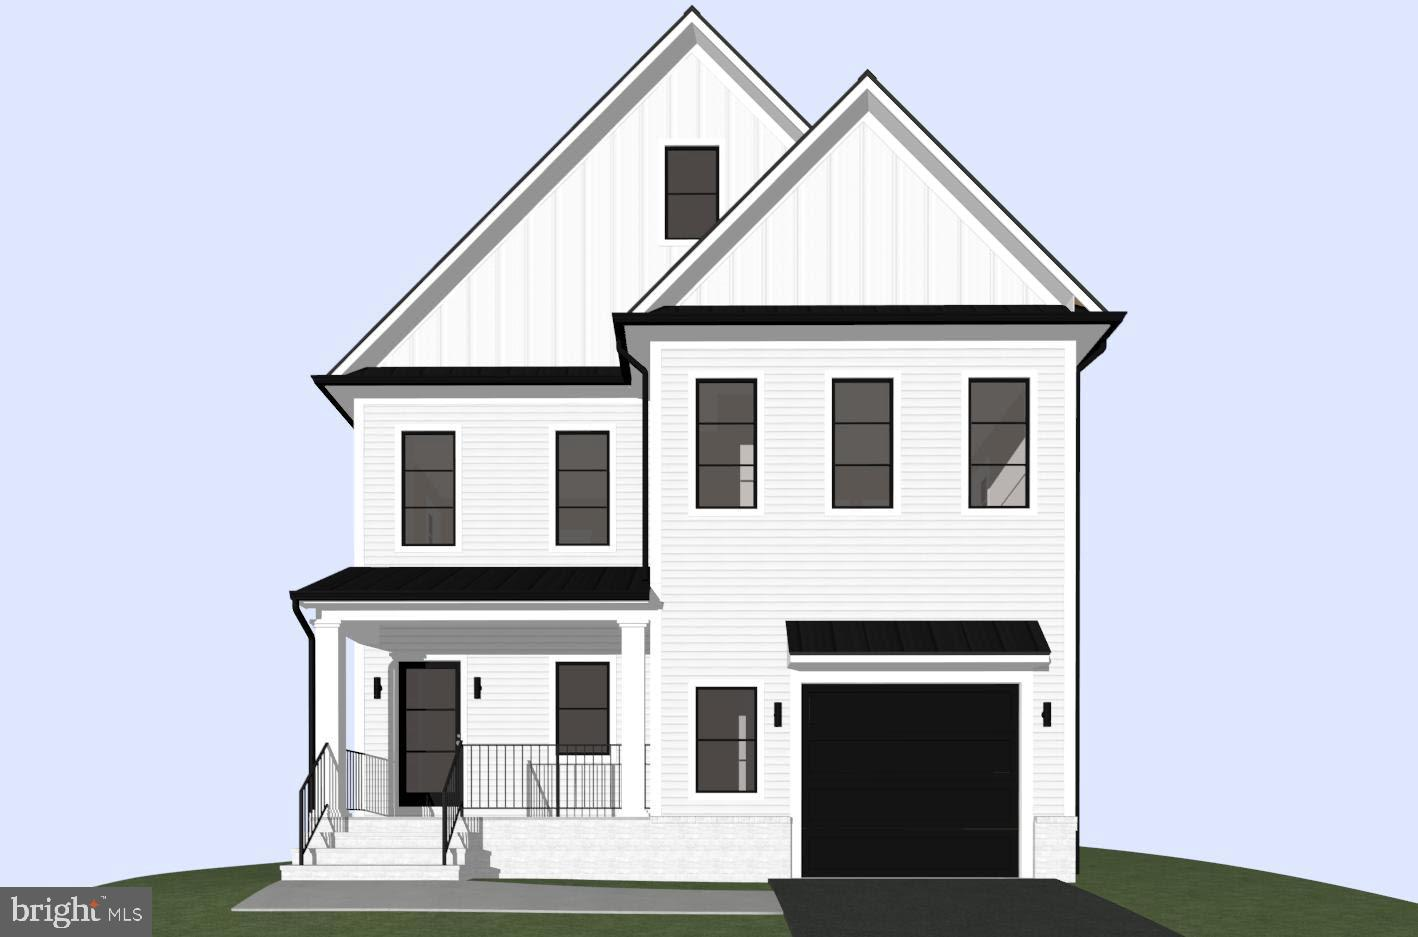 To-be-built custom home by Snead Custom Homes in Lyon Park! Fall 2021 delivery with time to make cus